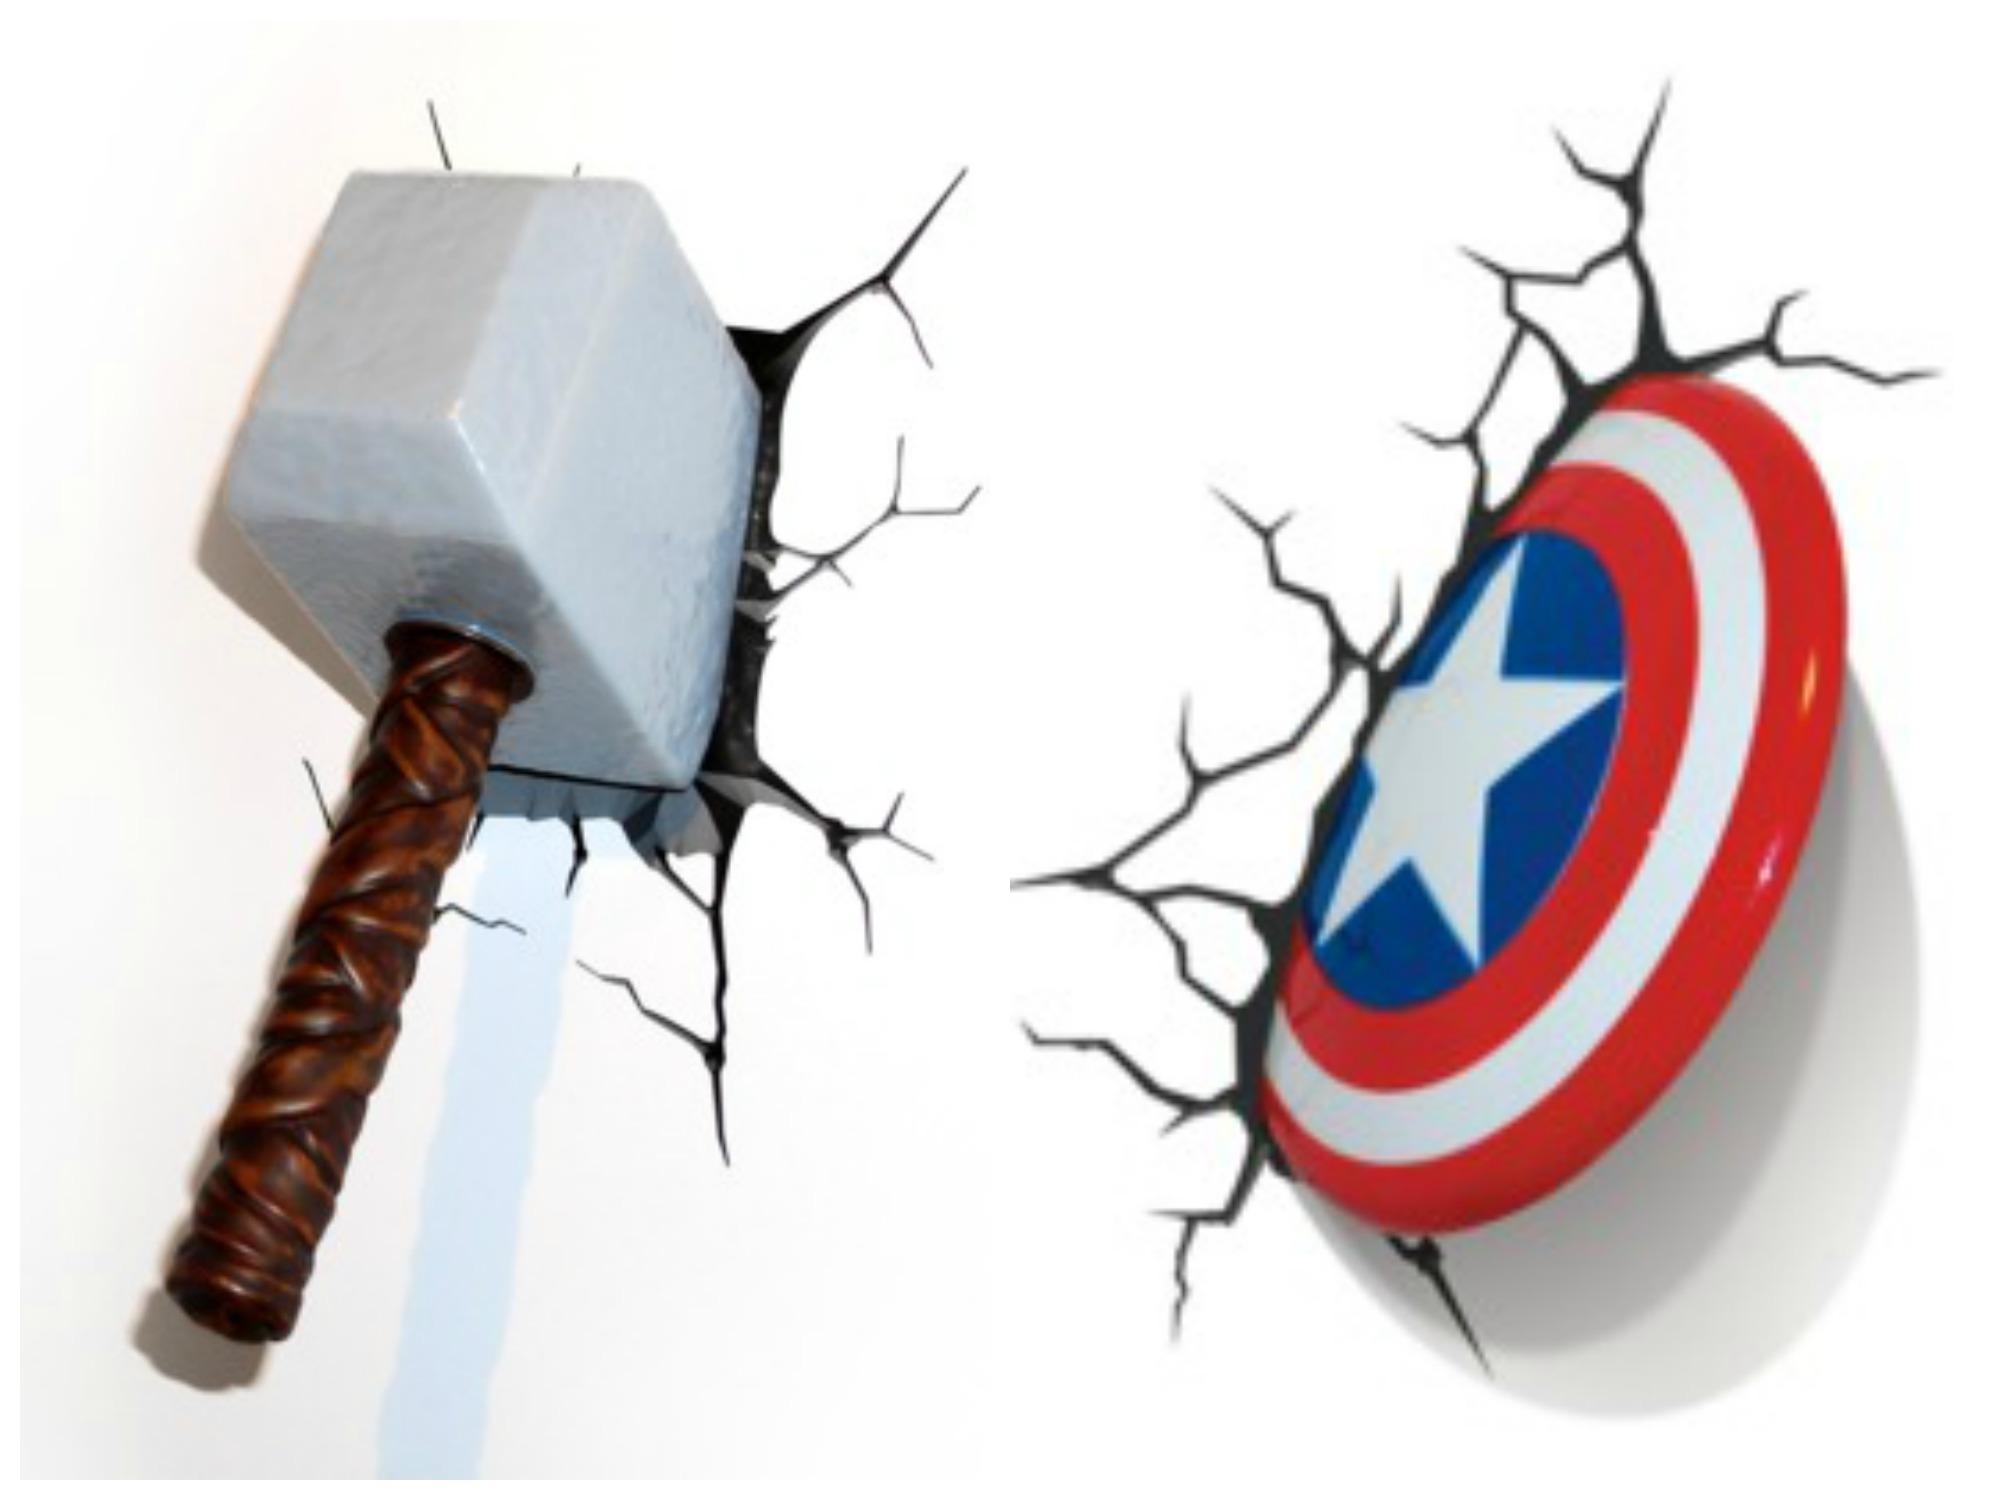 3D Wall Art Thor Hammer Night Light Uk | Wallartideas throughout 3D Wall Art Nightlight